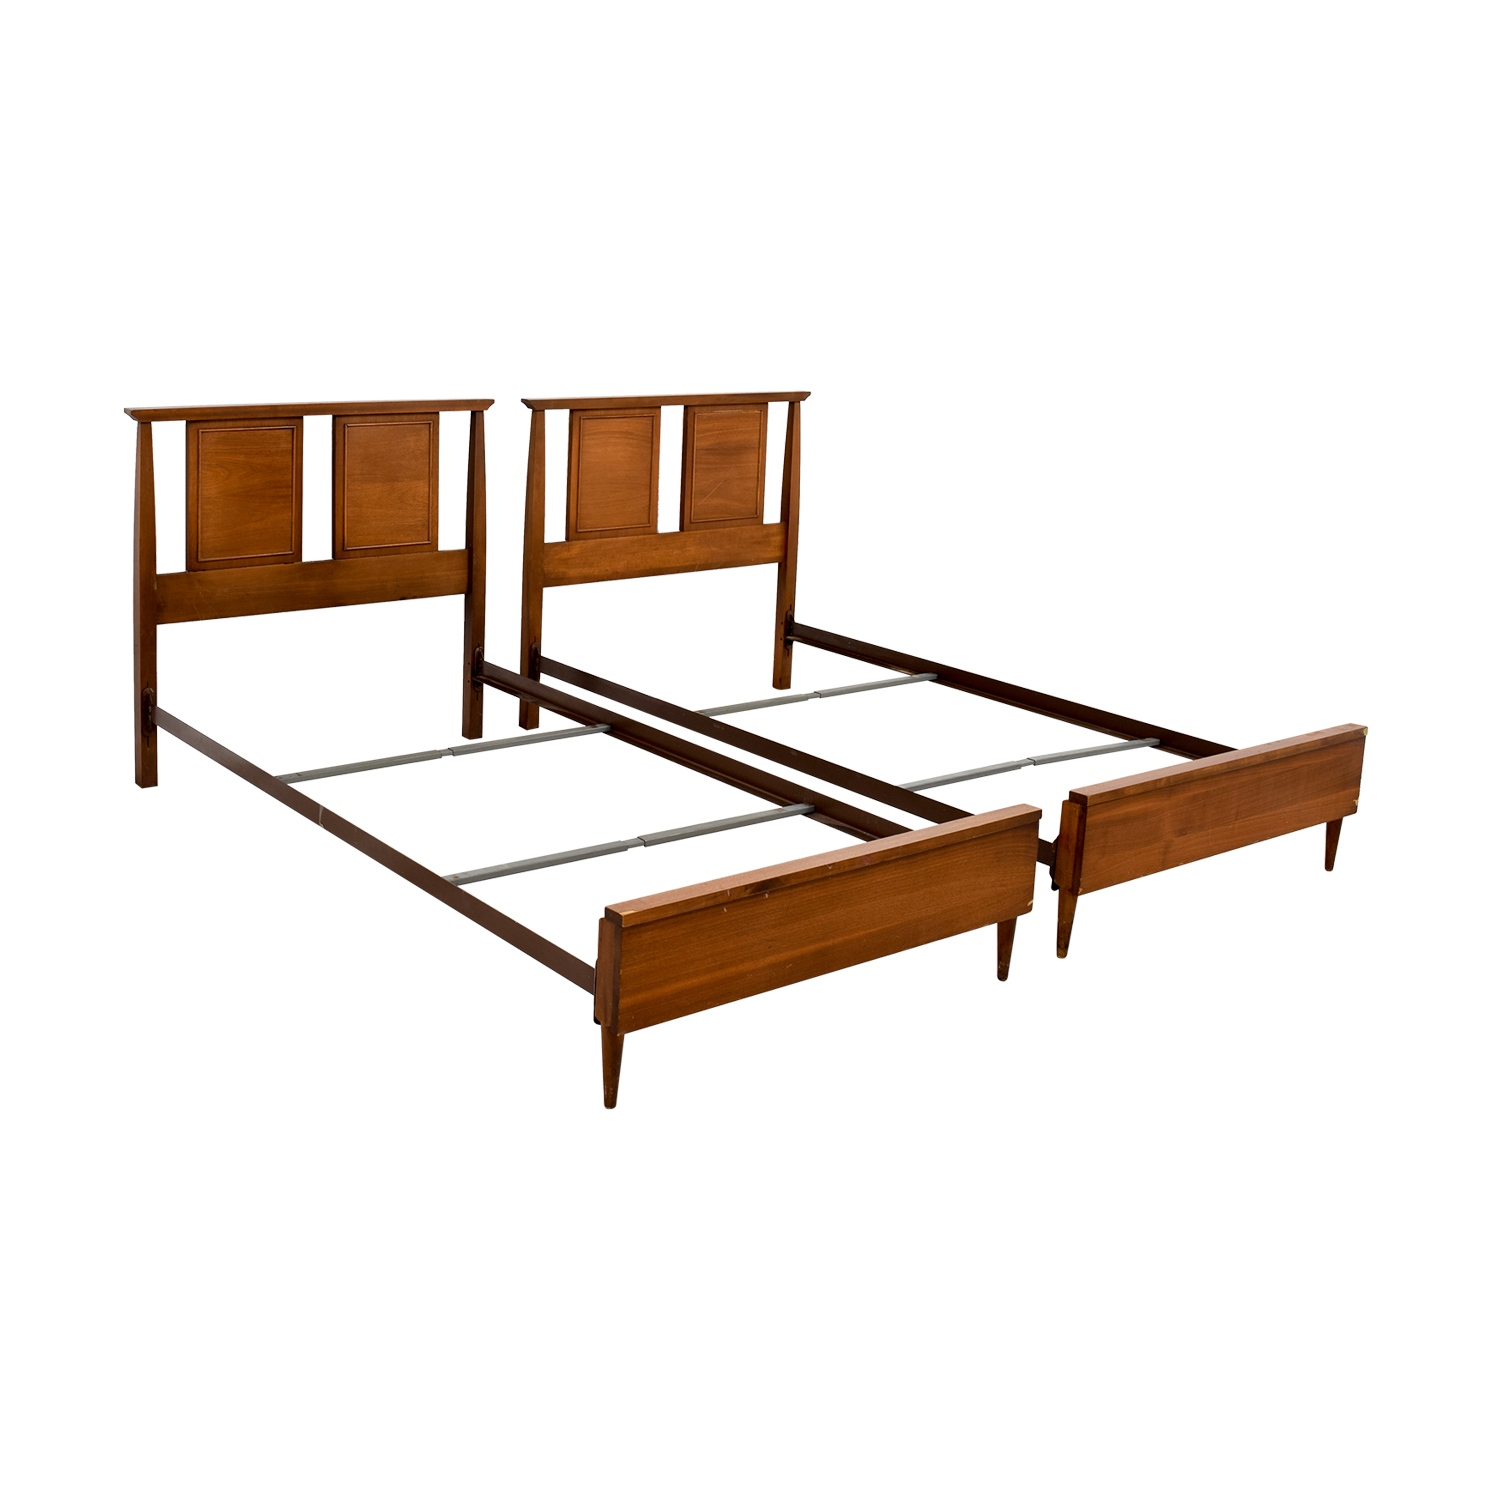 buy Seaman's Twin Bed Frames Seaman's Beds